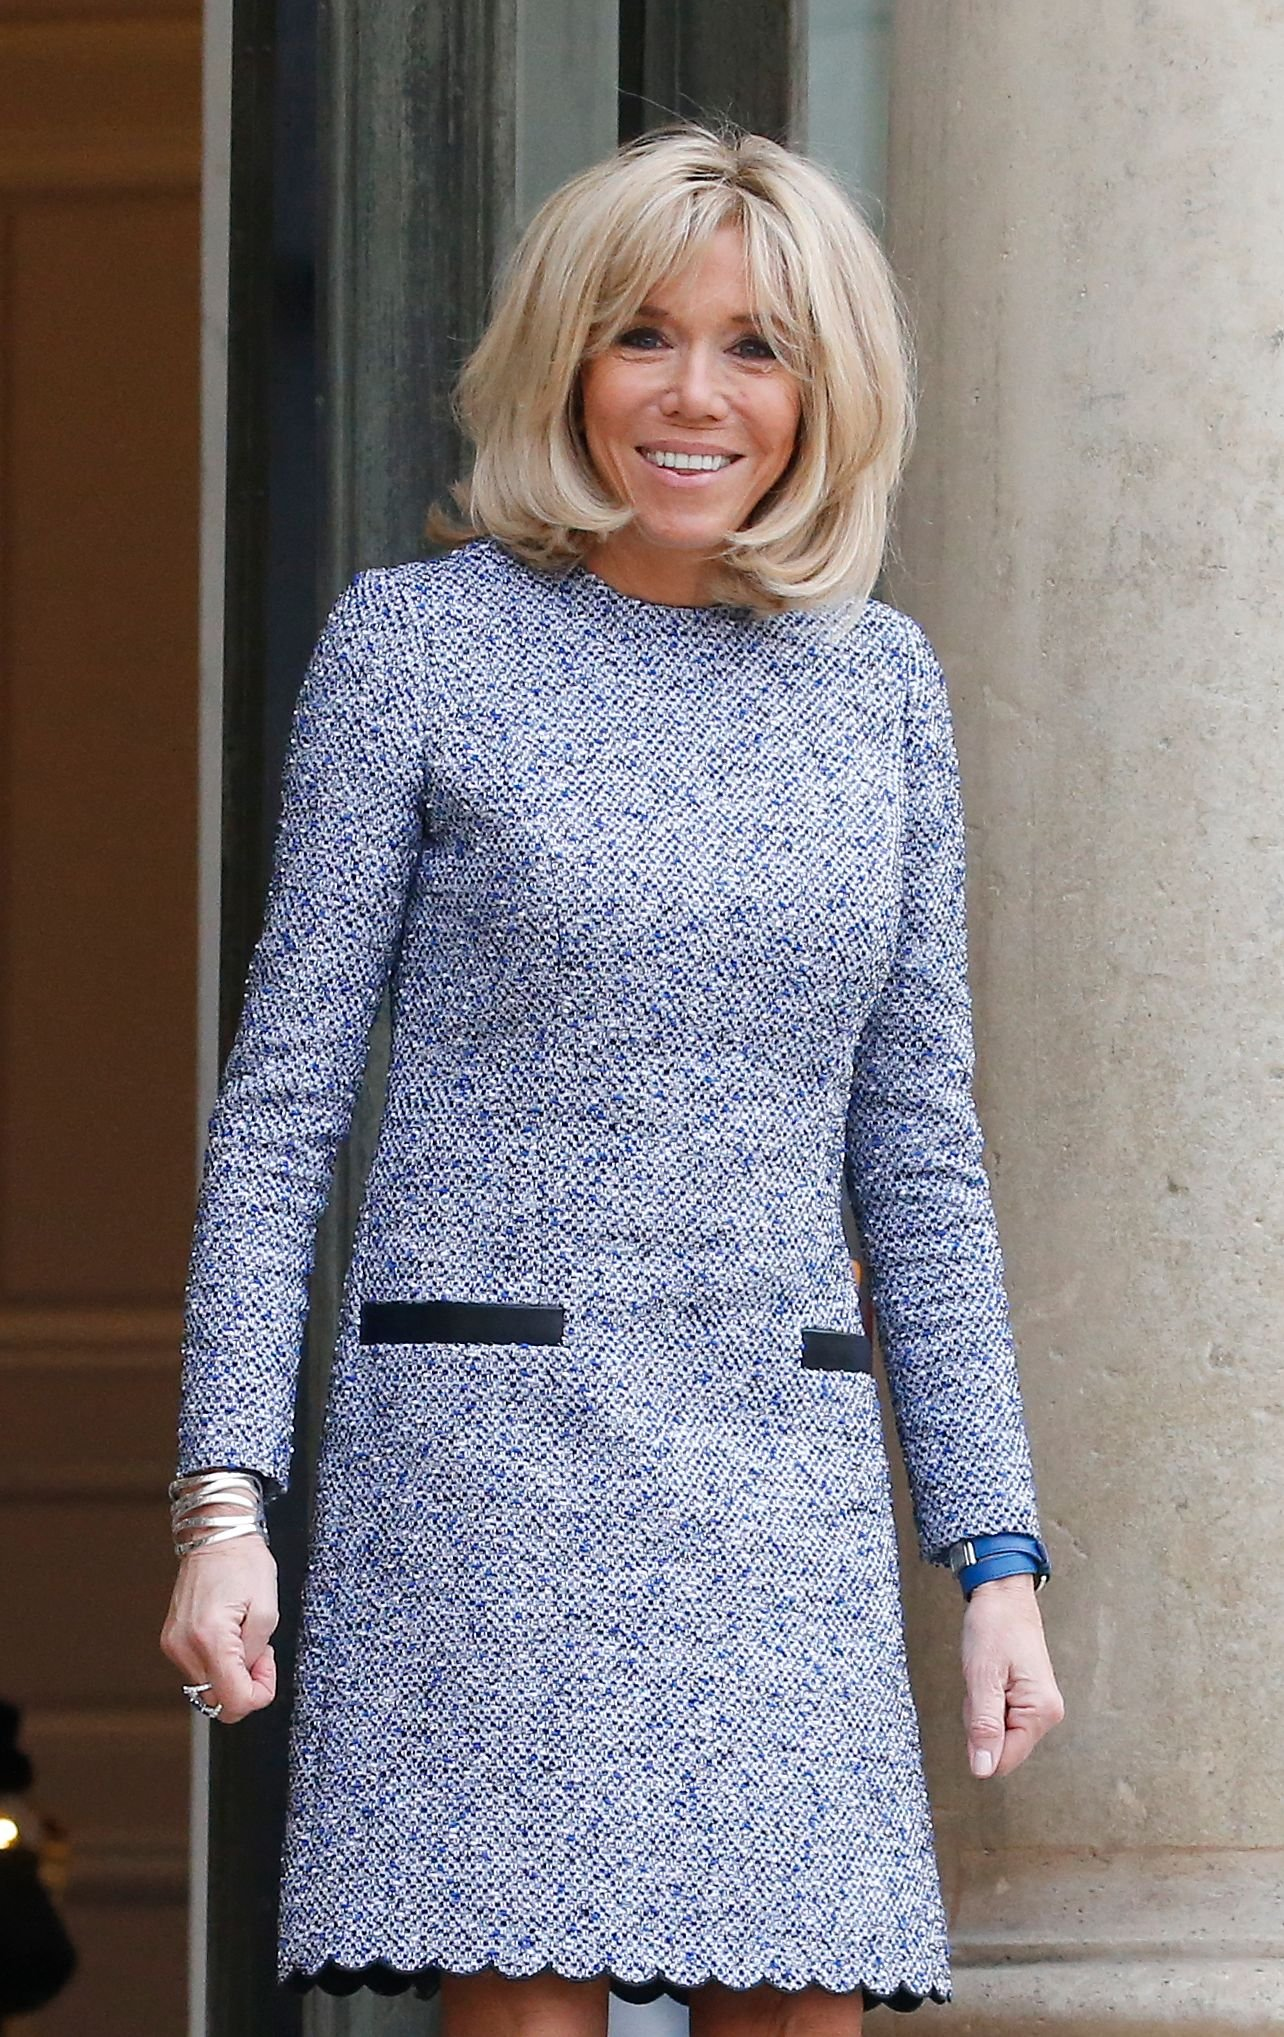 Brigitte Macron attend l'épouse du président roumain Carmen Iiohannis avant leur rencontre à l'Elysée le 27 novembre 2018 à Paris, France. | Photo : Getty Images